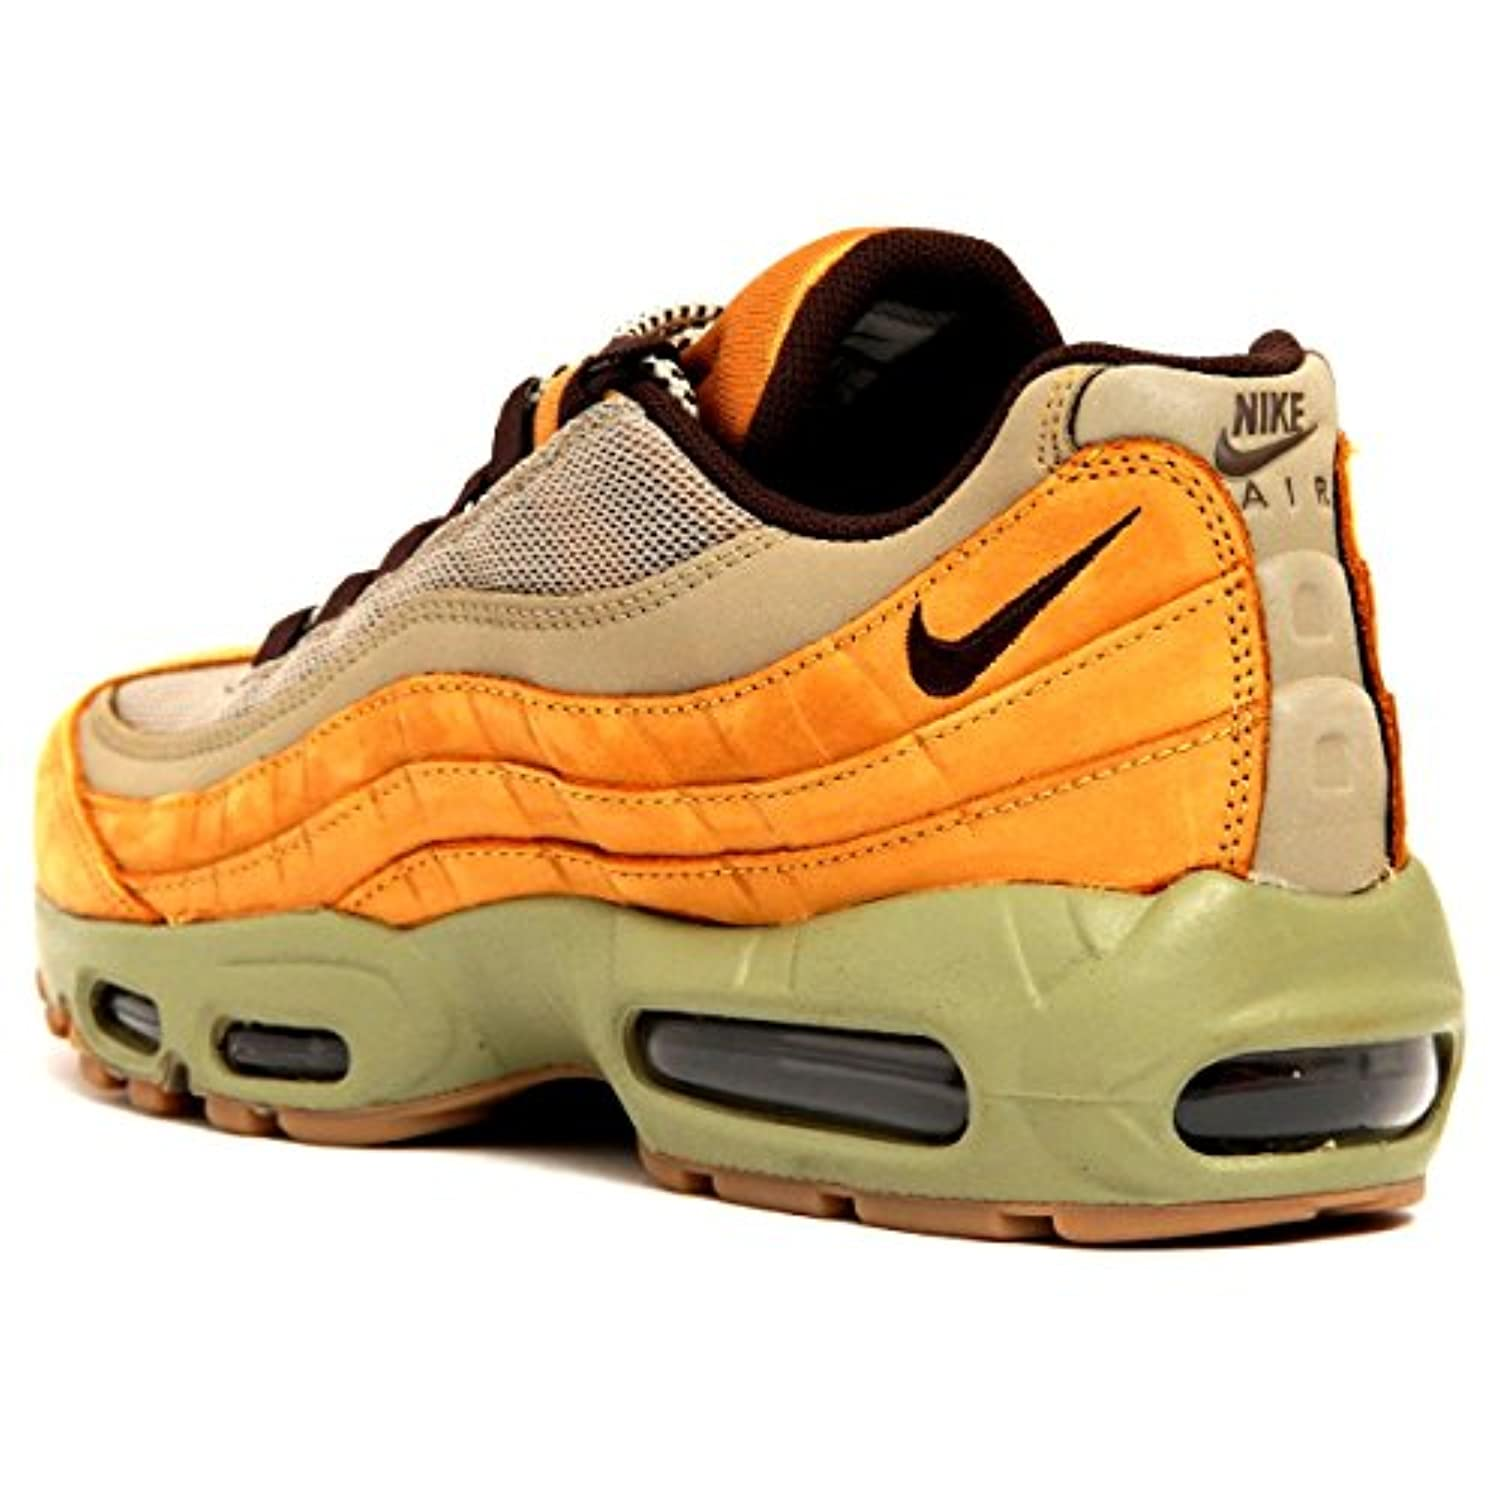 separation shoes 2aee5 85742 Nike Air Max 95 PRM (BRONZE/BAROQUE BROWN-BAMBOO) (11.5)   $85 - Buy today!